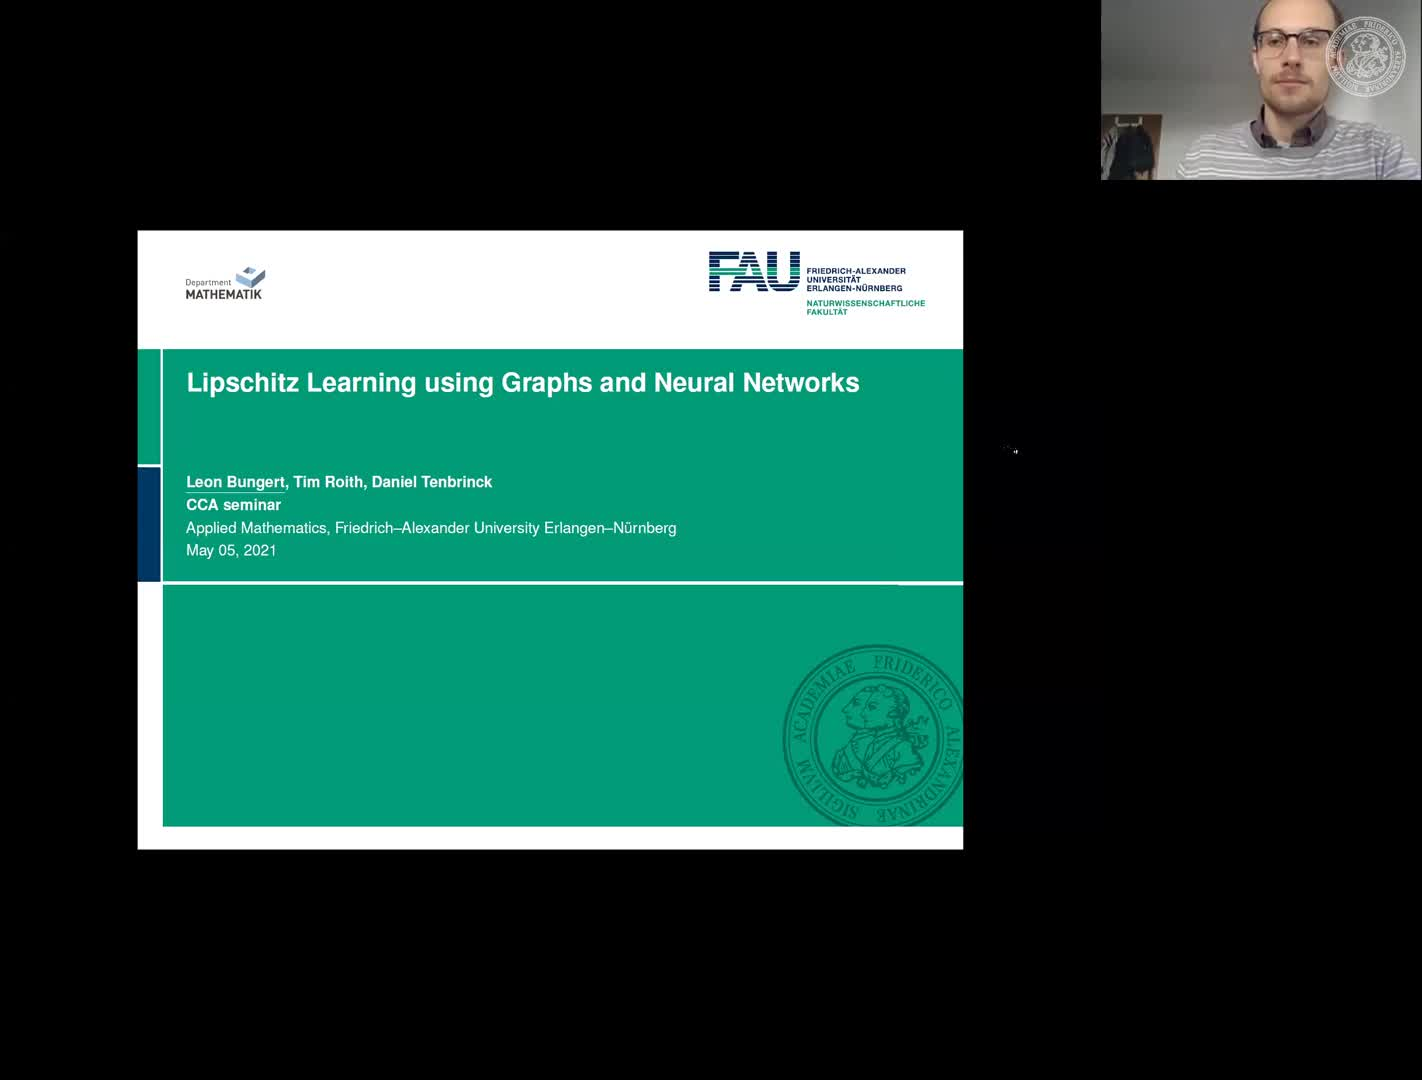 Lipschitz Learning using Graphs and Neural Networks (L. Bungert , FAU, Germany ) preview image